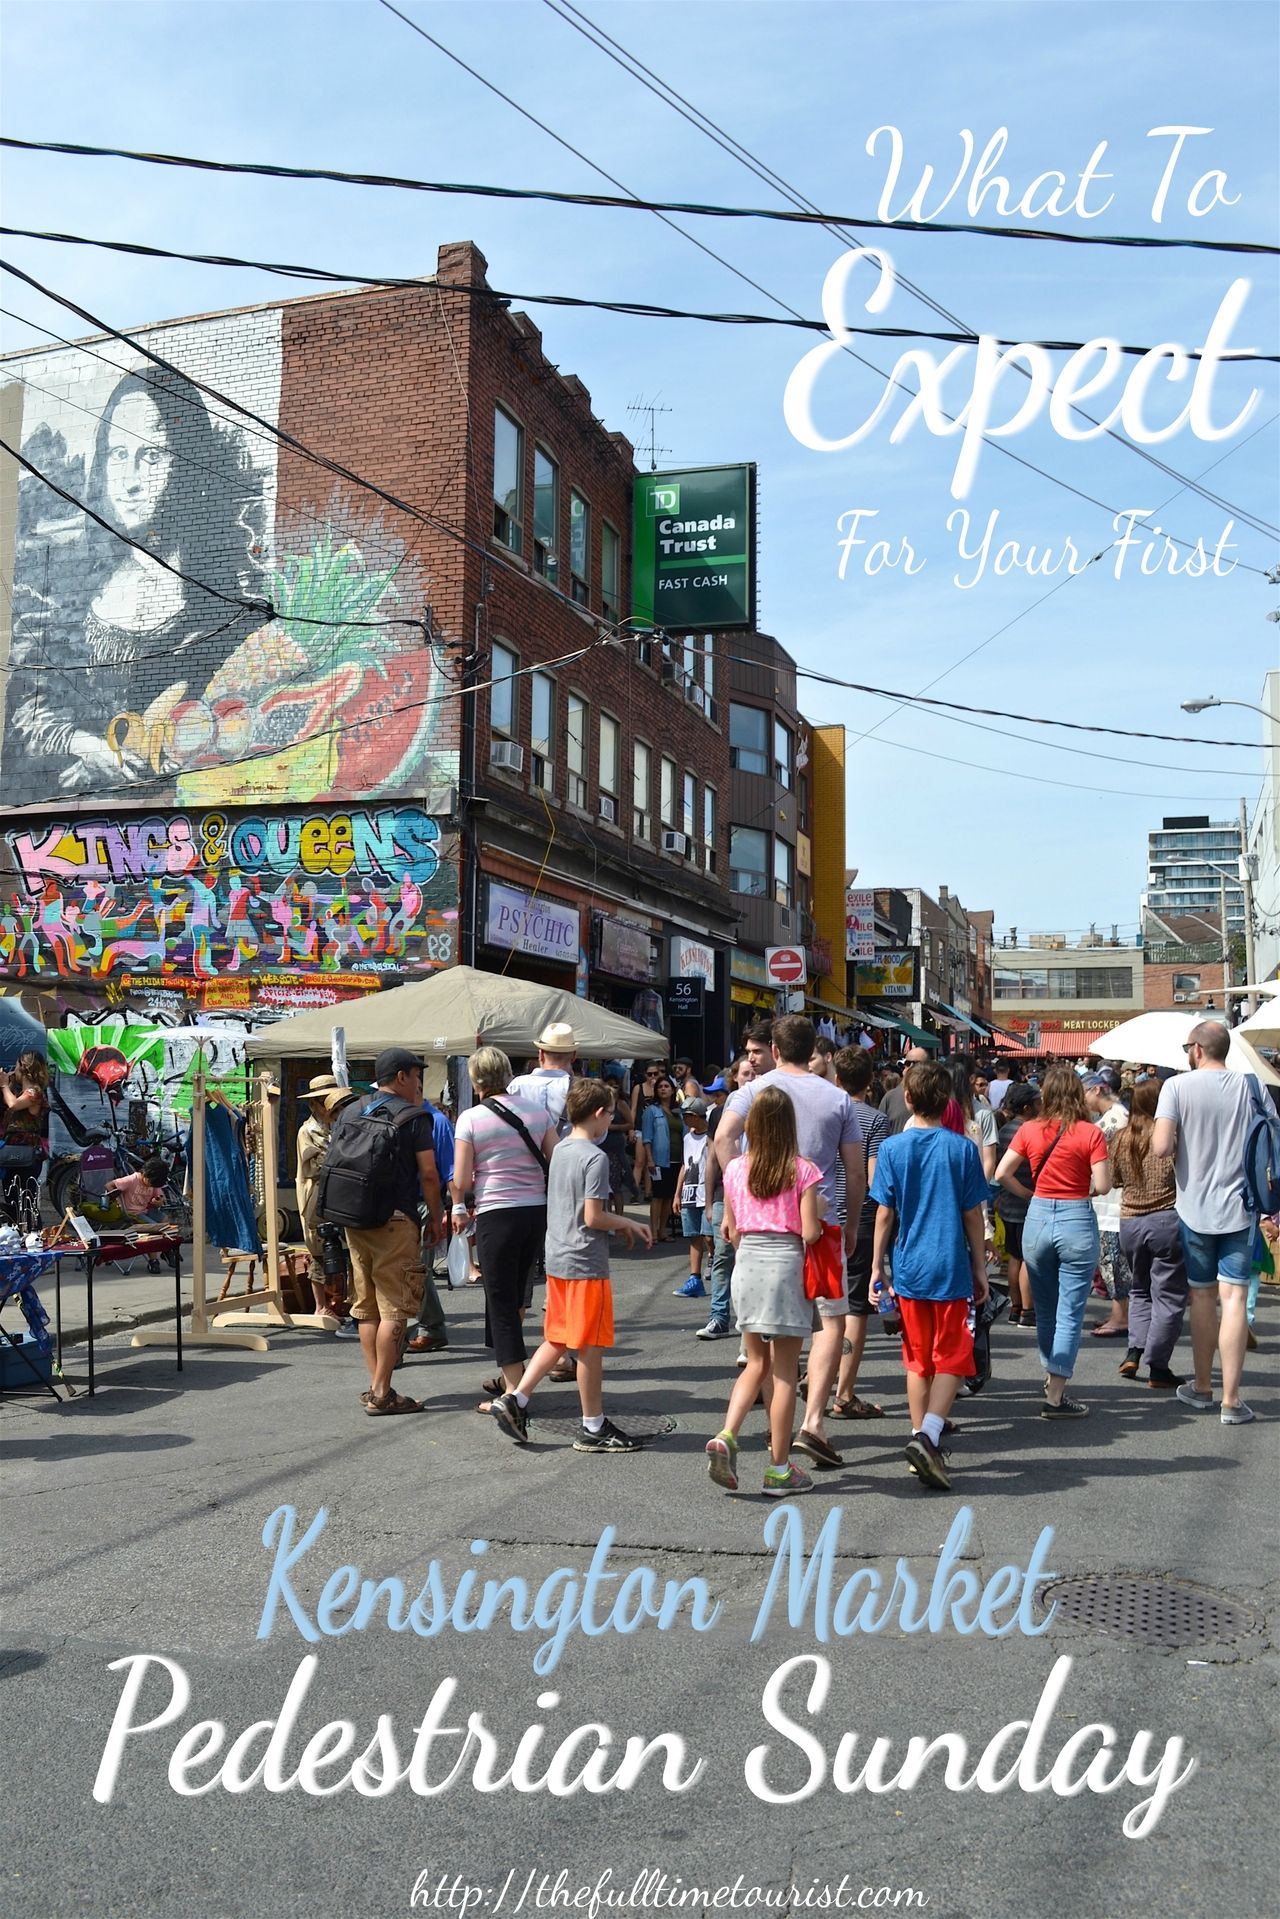 What To Expect For Your First Kensington Market Pedestrian Sunday The Full Time Tourist Toronto Travel Canada Travel North America Travel